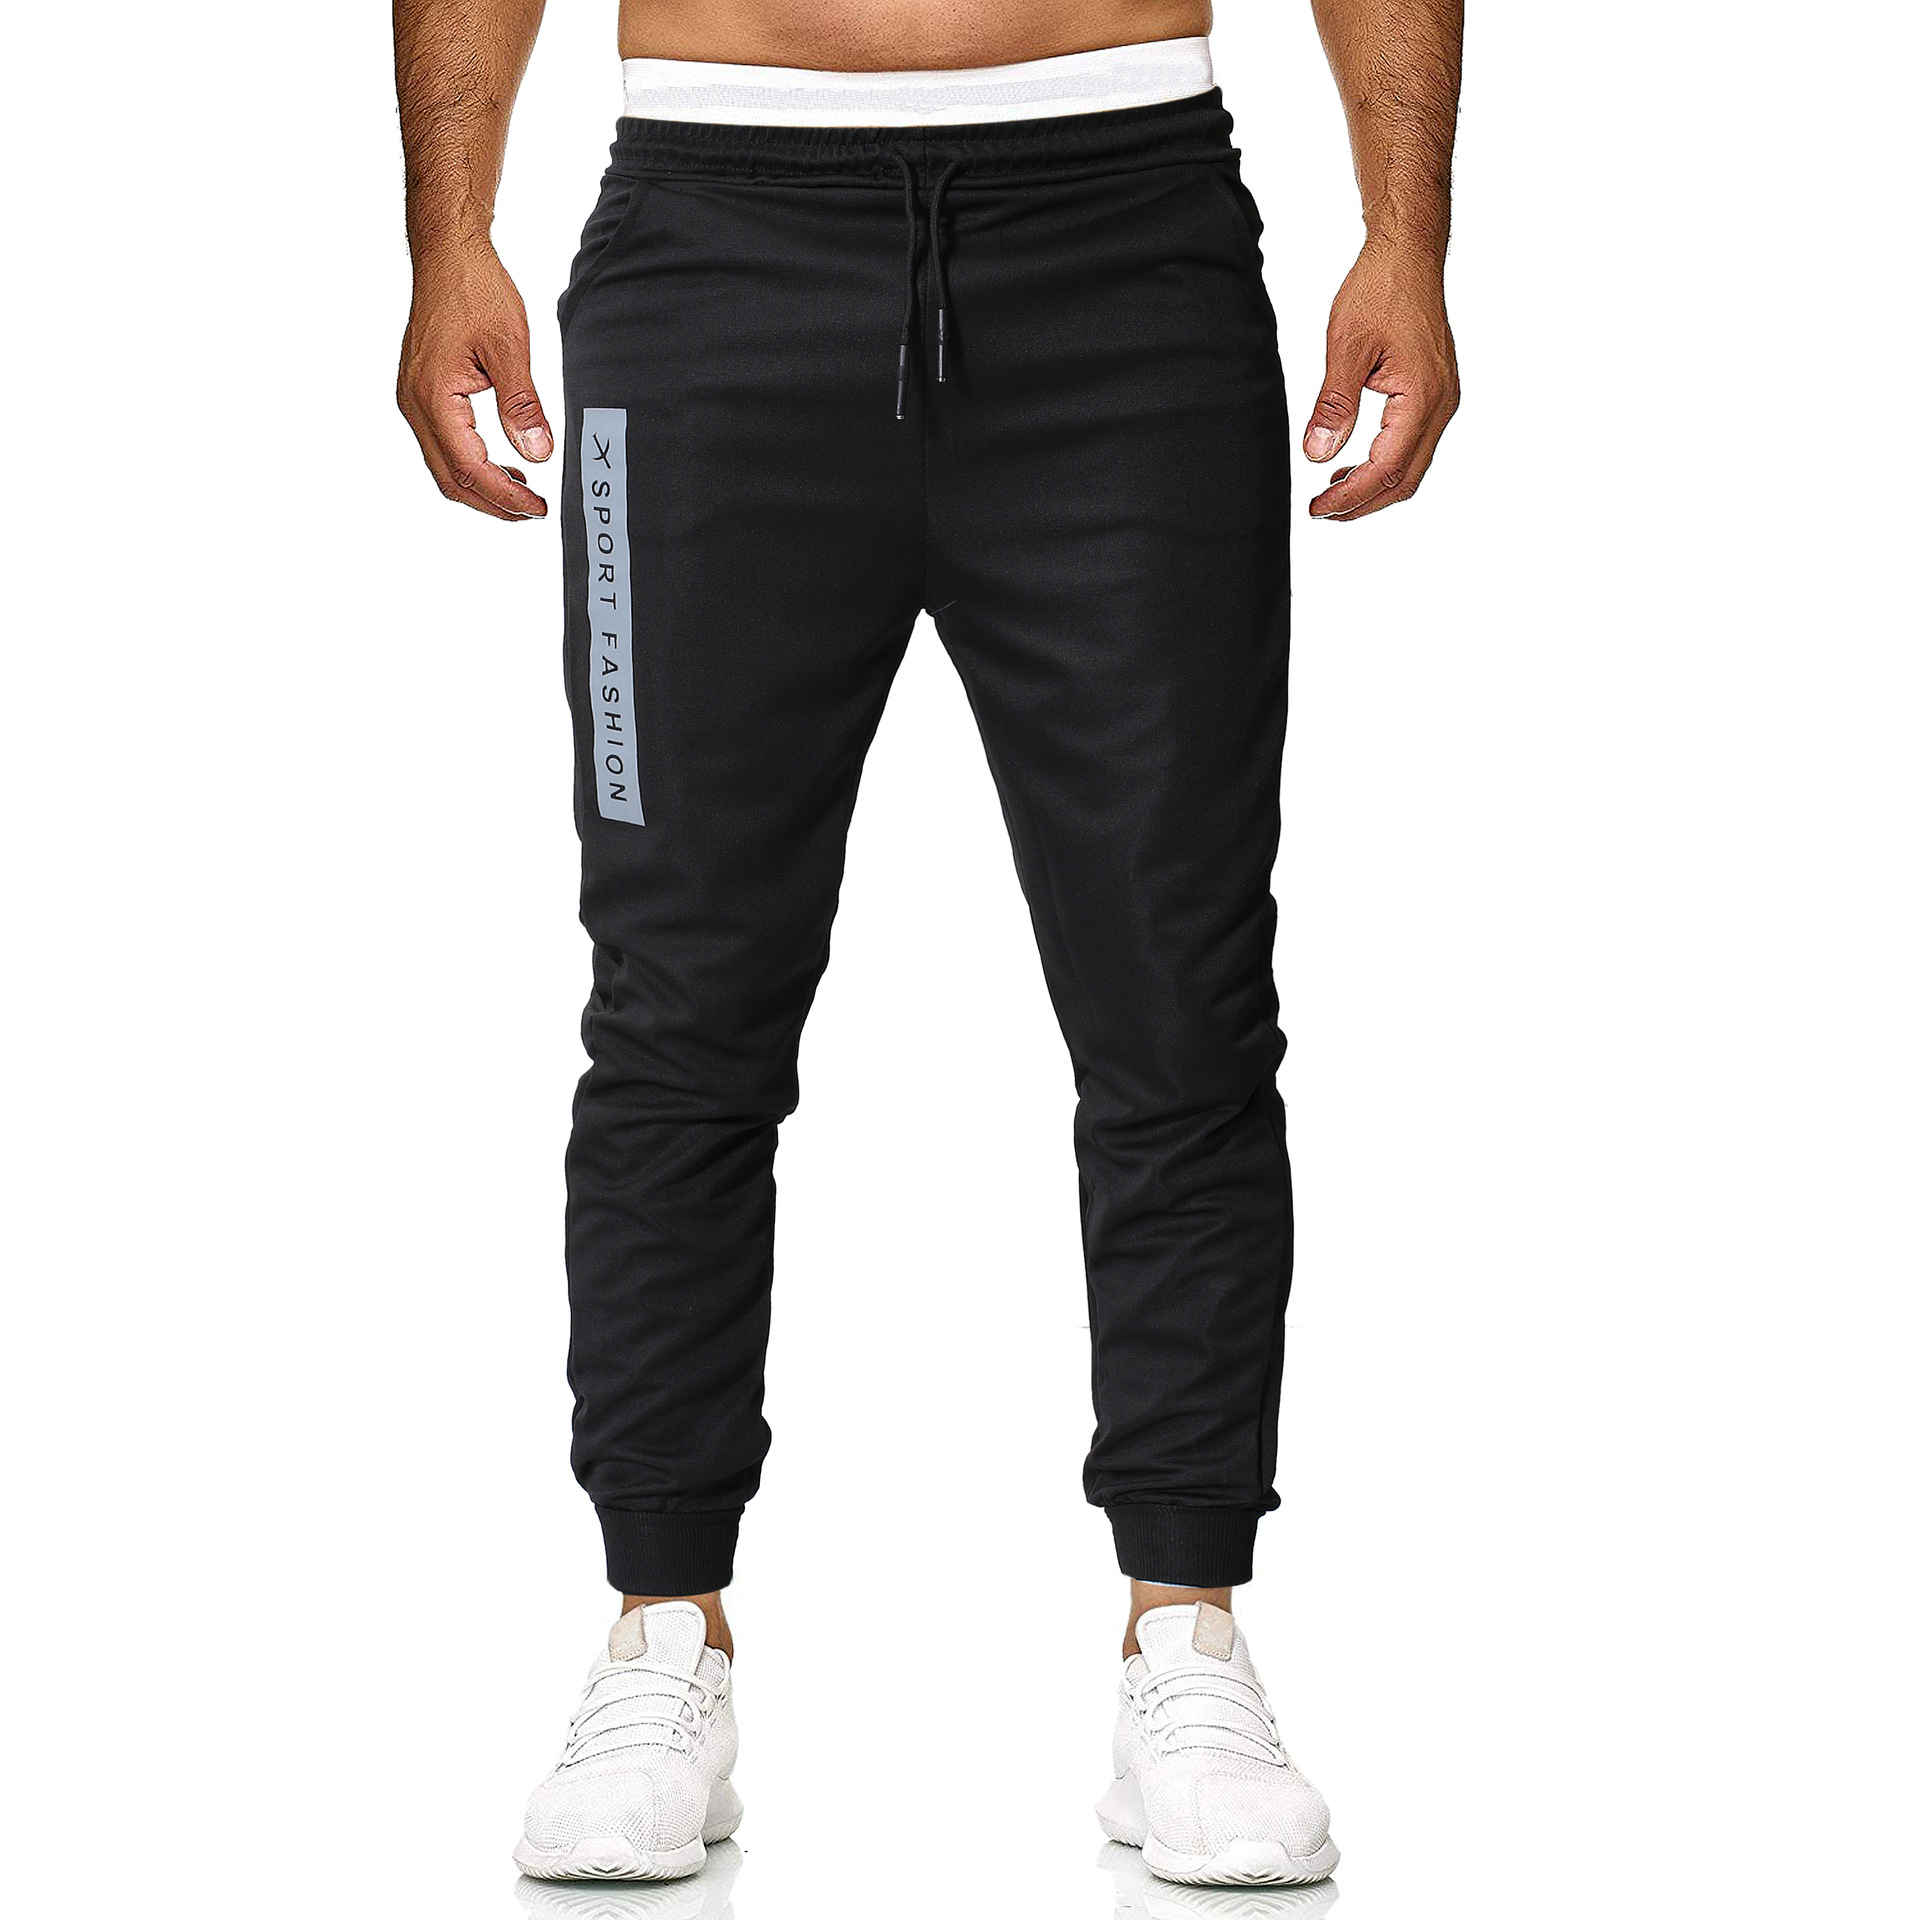 AliExpress New Style Casual Pants Men's Large Size Capri Pants With Drawstring Sports Running Training Men's Trousers